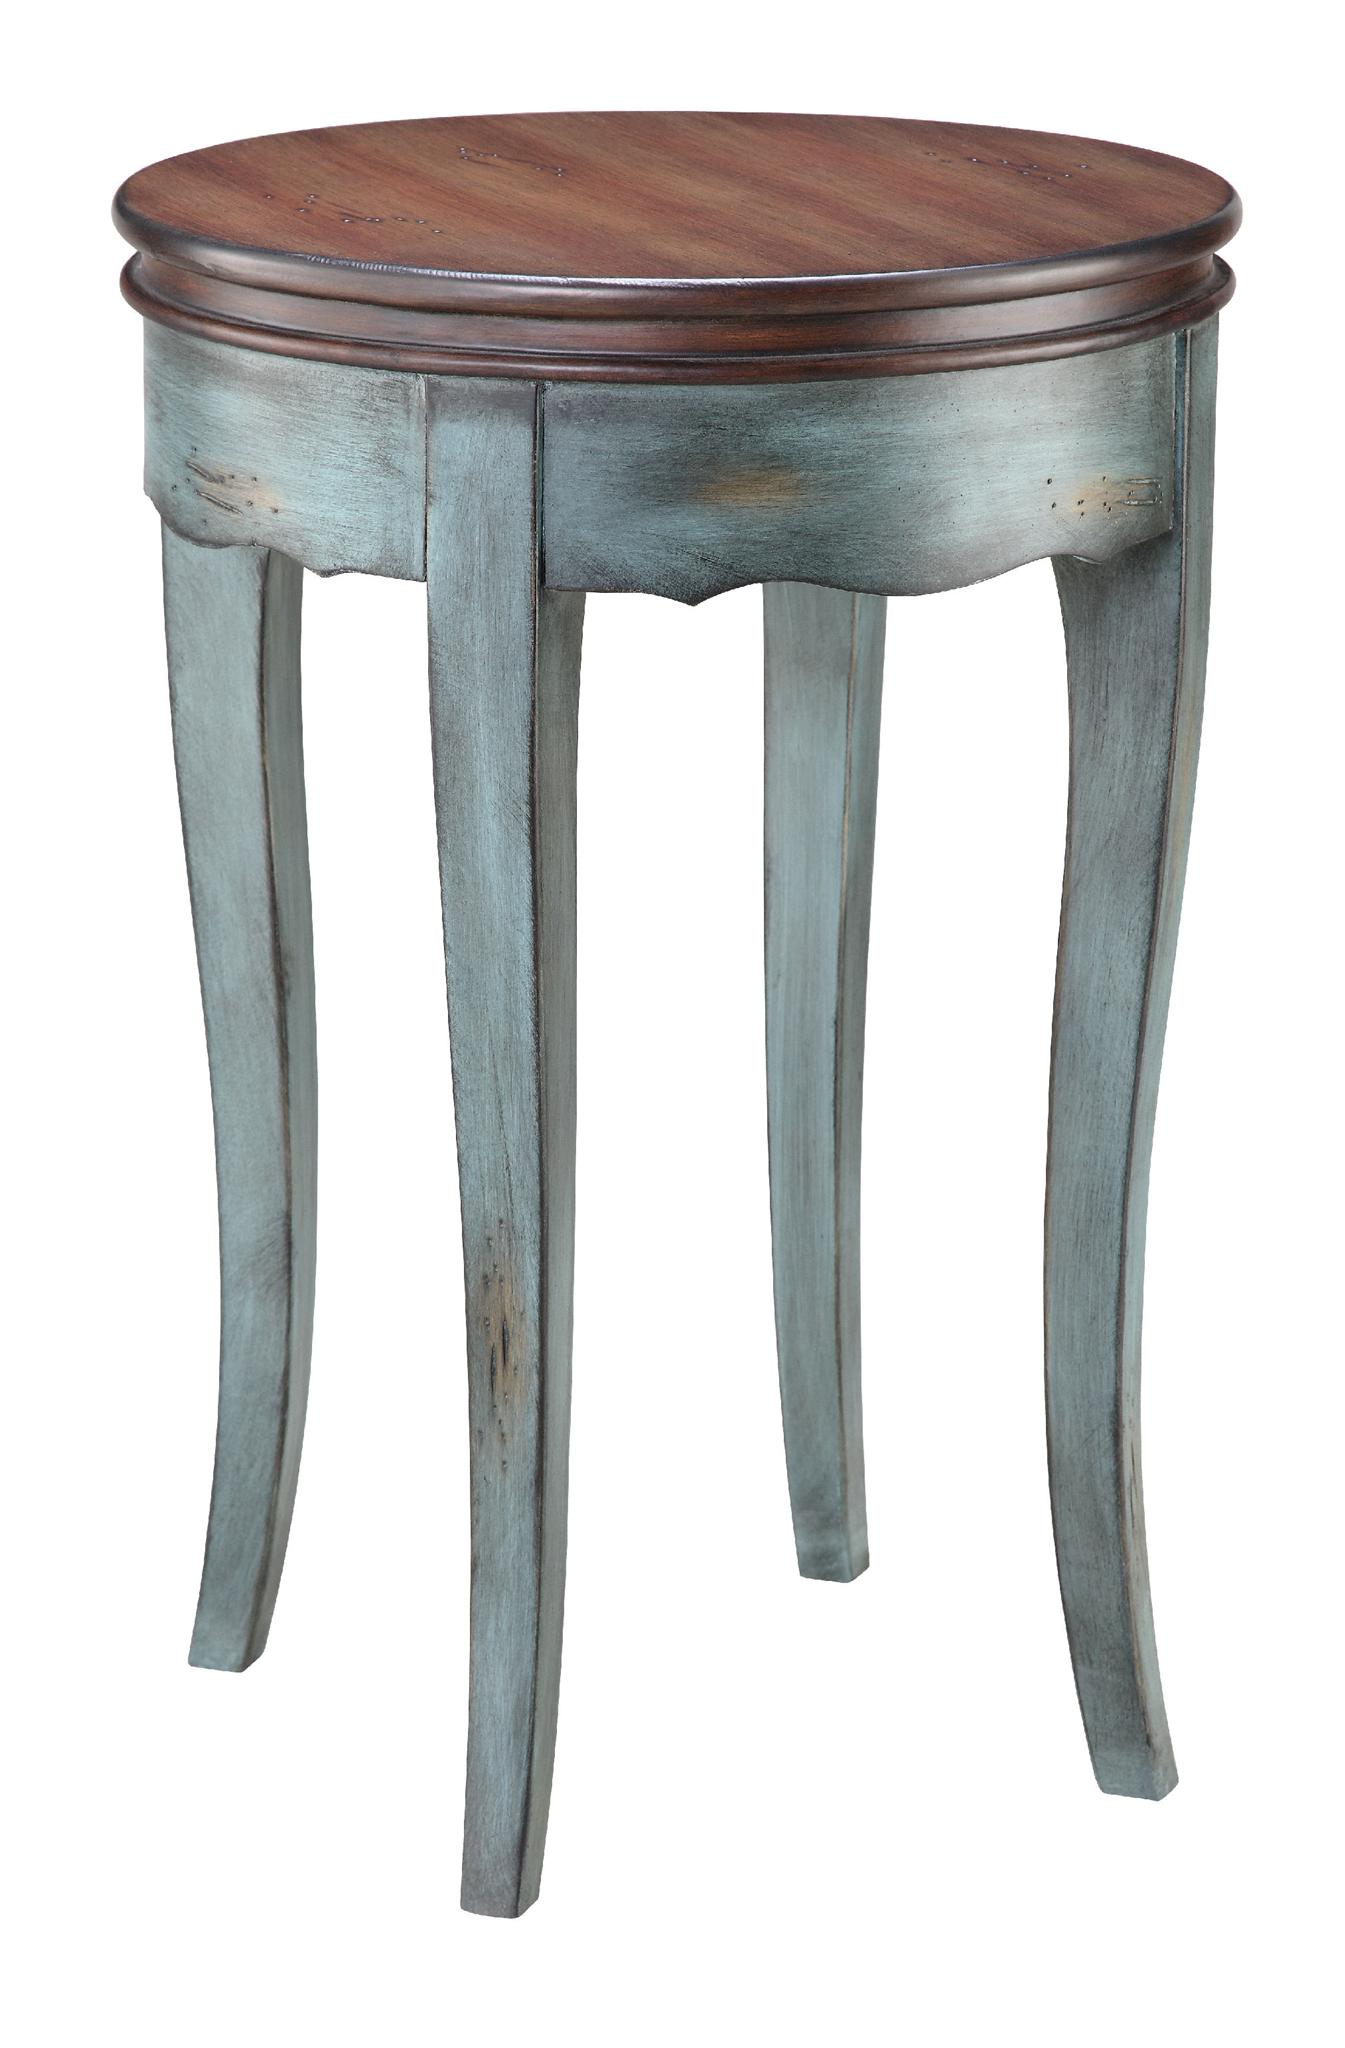 hartford accent table all american furniture less open tables wood end with drawers nate berkus round gold marble top reclaimed dining carpet door plates pottery barn hudson black